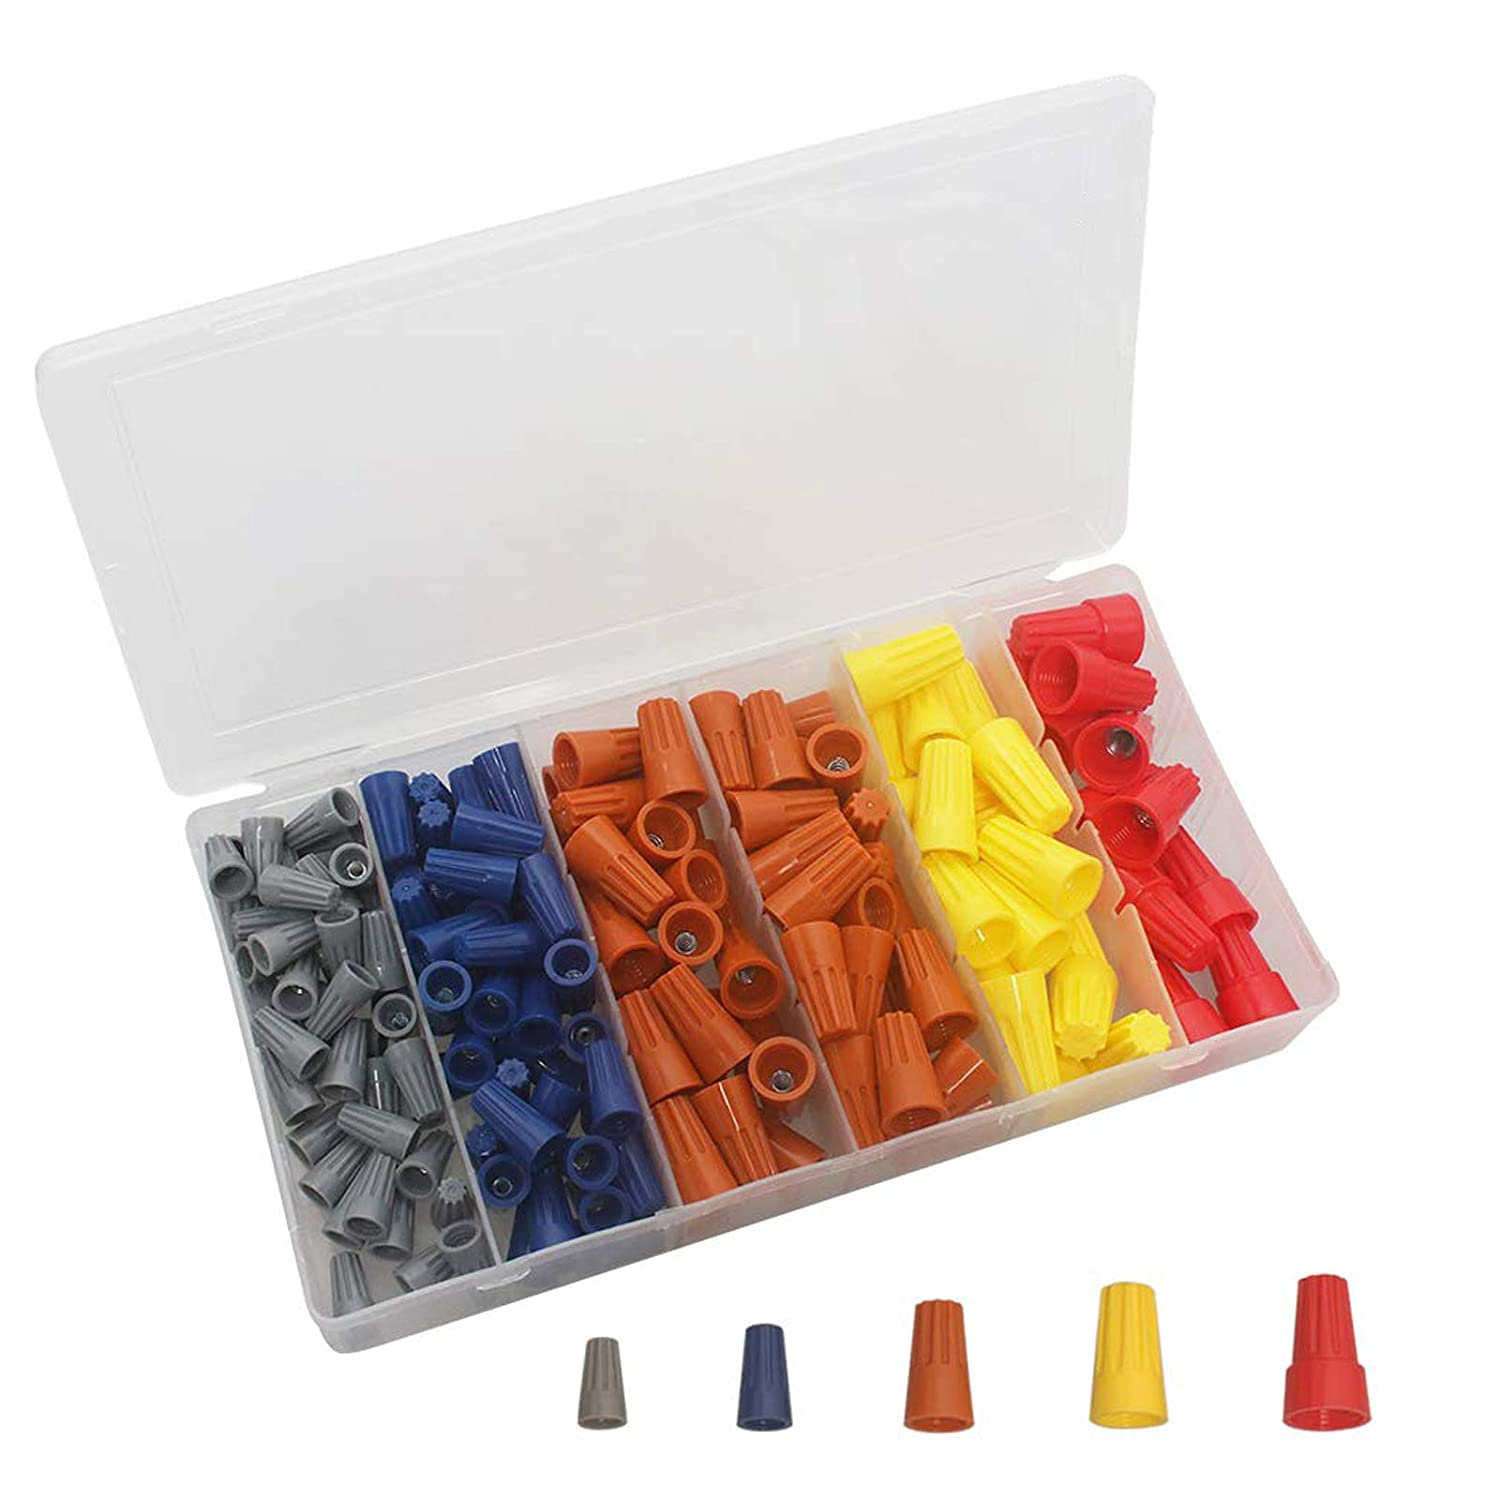 Nuts Spring AWG 220 Pcs Electrical Wire Connectors Screw Terminals Assortment